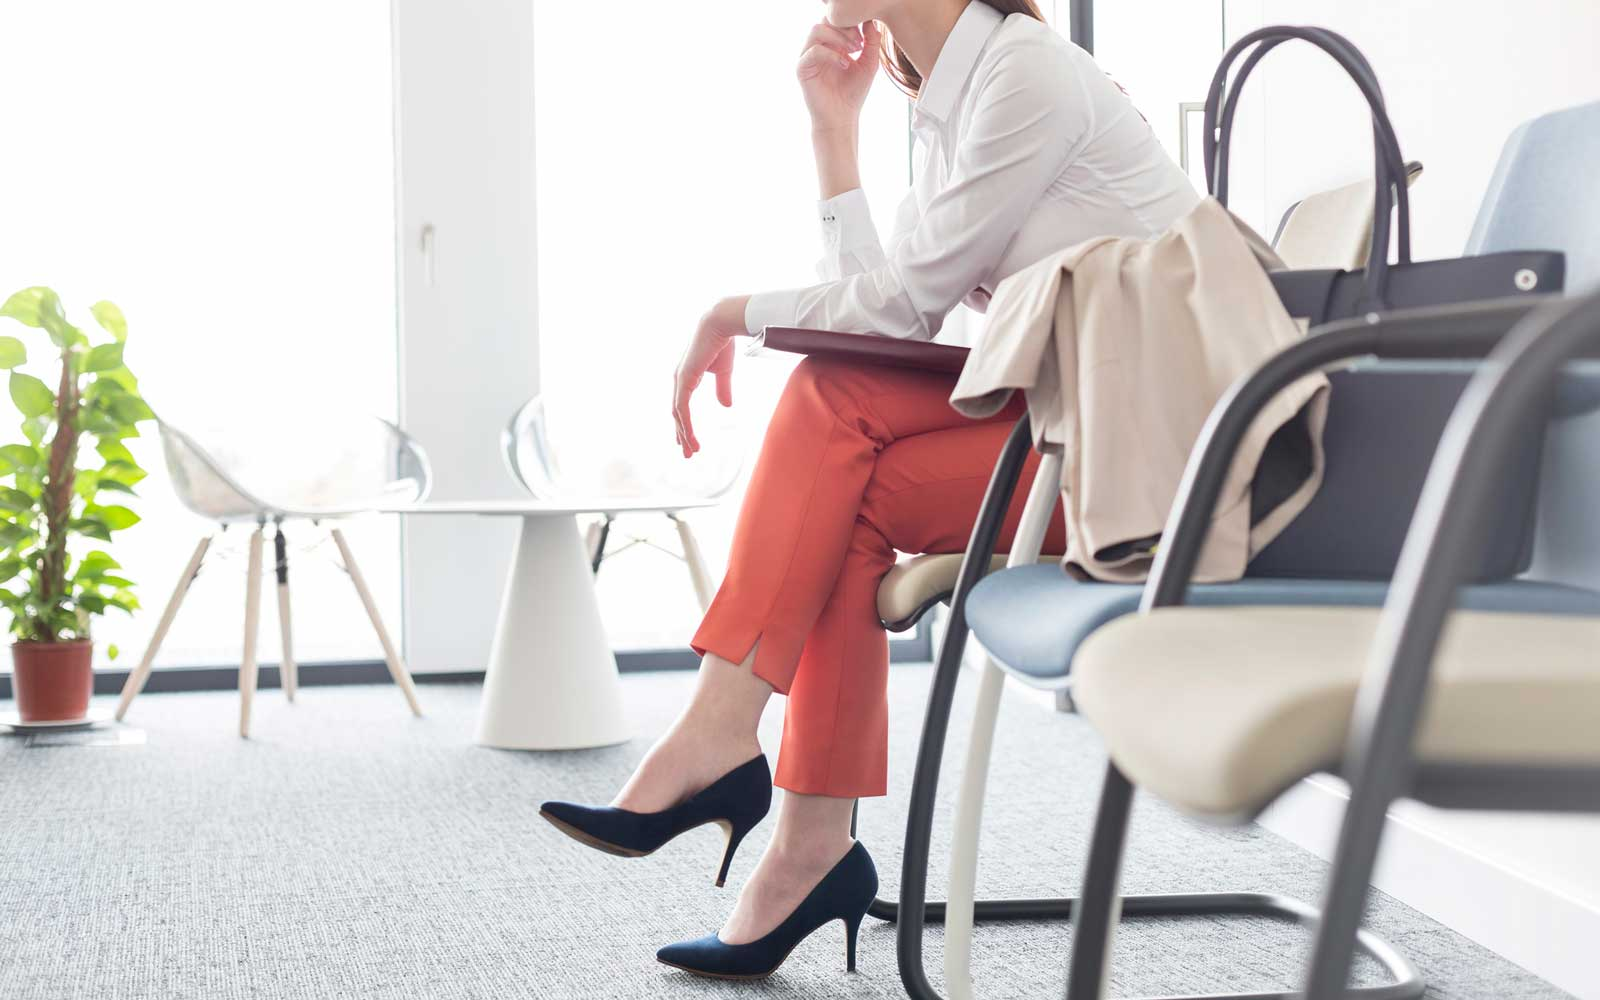 Businesswoman waiting with legs crossed in lobby